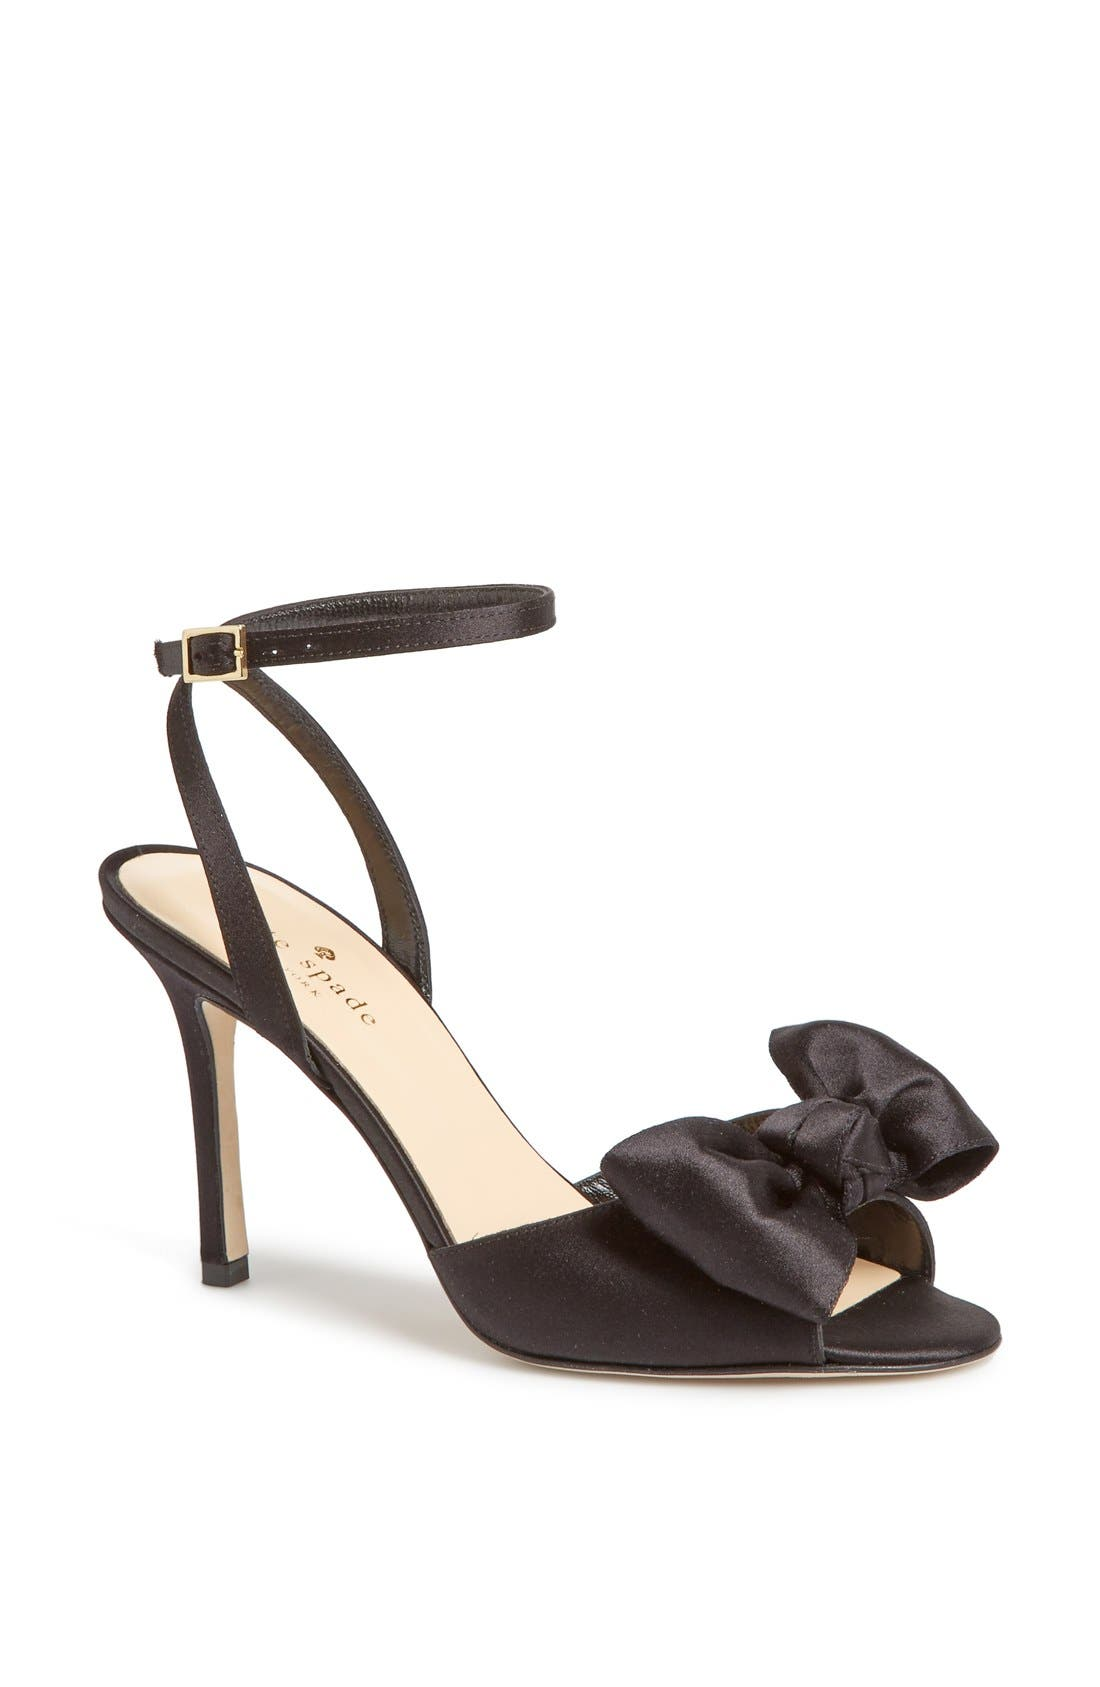 Main Image - kate spade new york 'ilexa' satin sandal